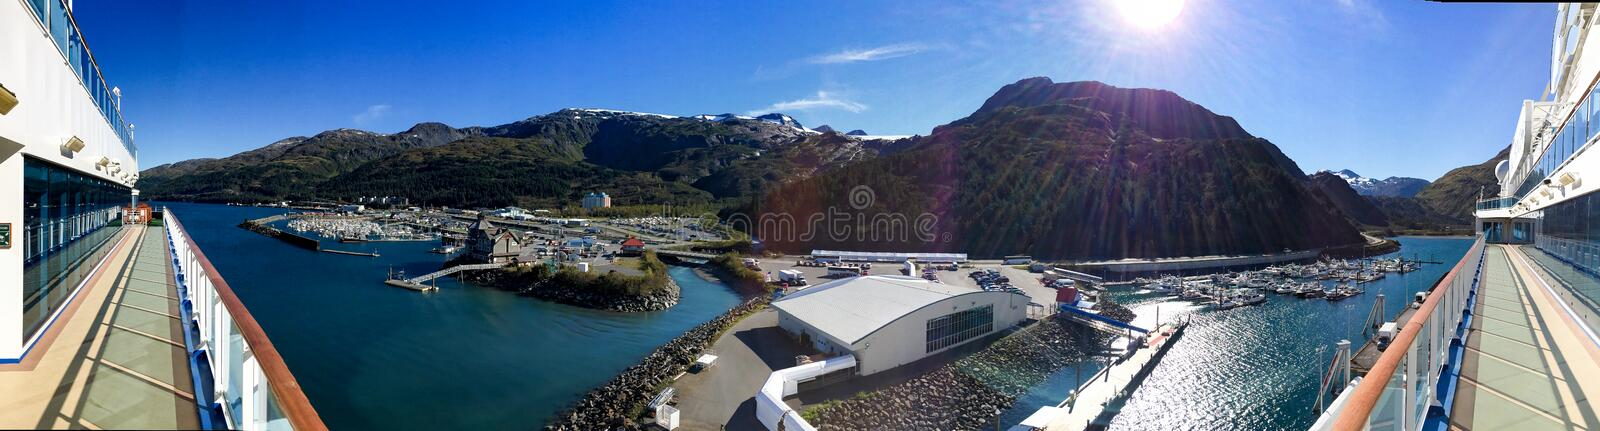 Whittier Alaska. Whittier, Alaska, USA - Sept. 10, 2016: Located approximately 65 miles southeast of Anchorage, Whittier lies at the base of the Chugach stock image